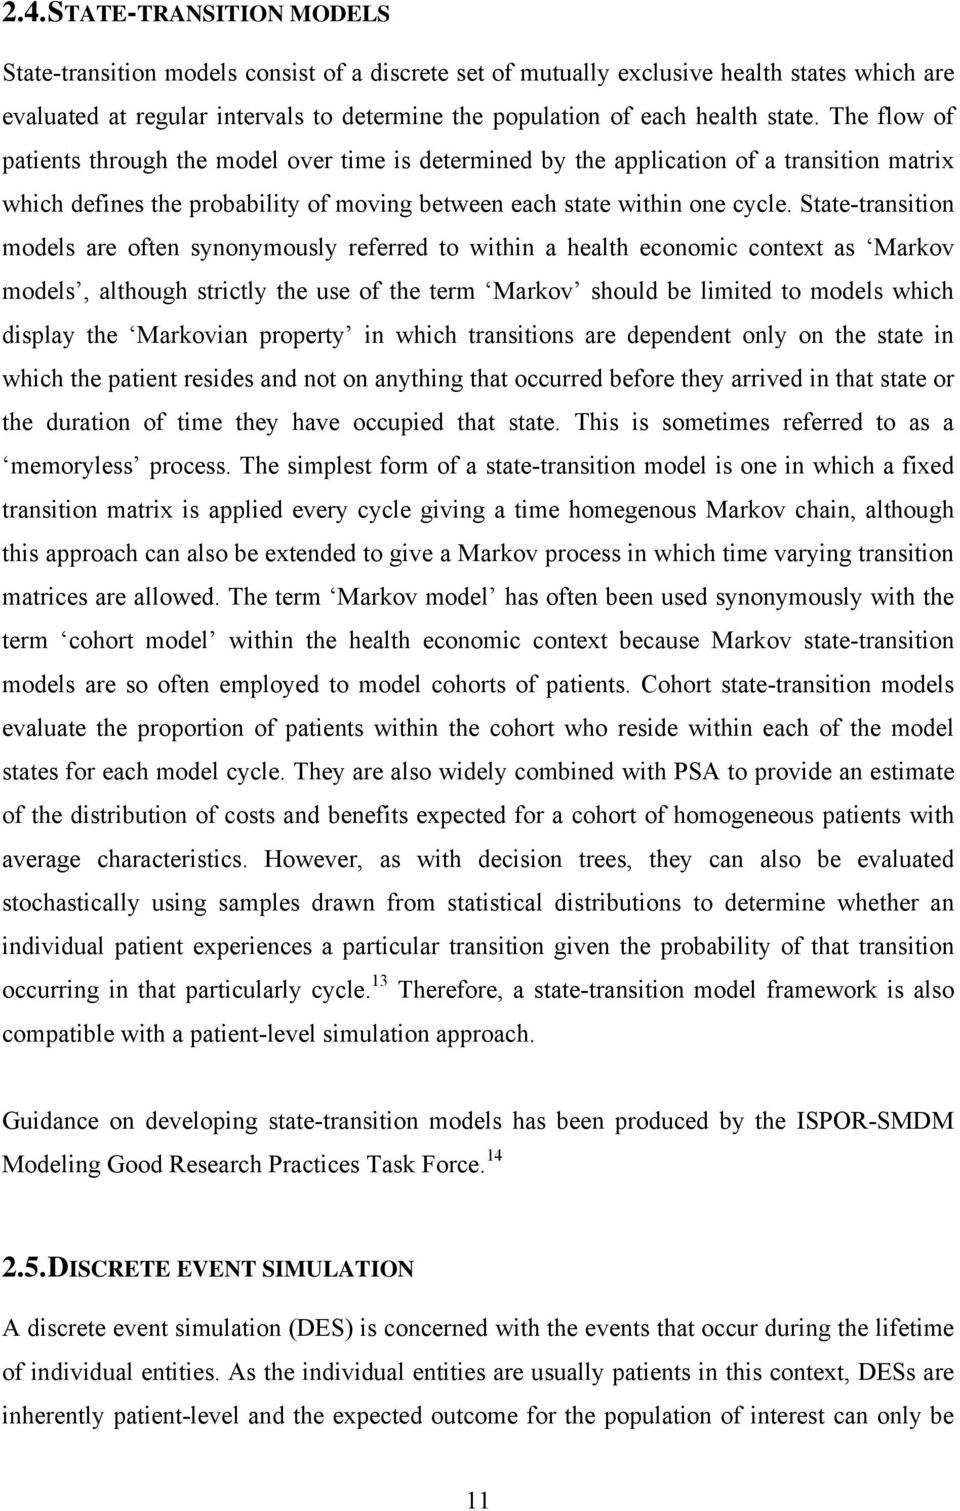 State-transition models are often synonymously referred to within a health economic context as Markov models, although strictly the use of the term Markov should be limited to models which display